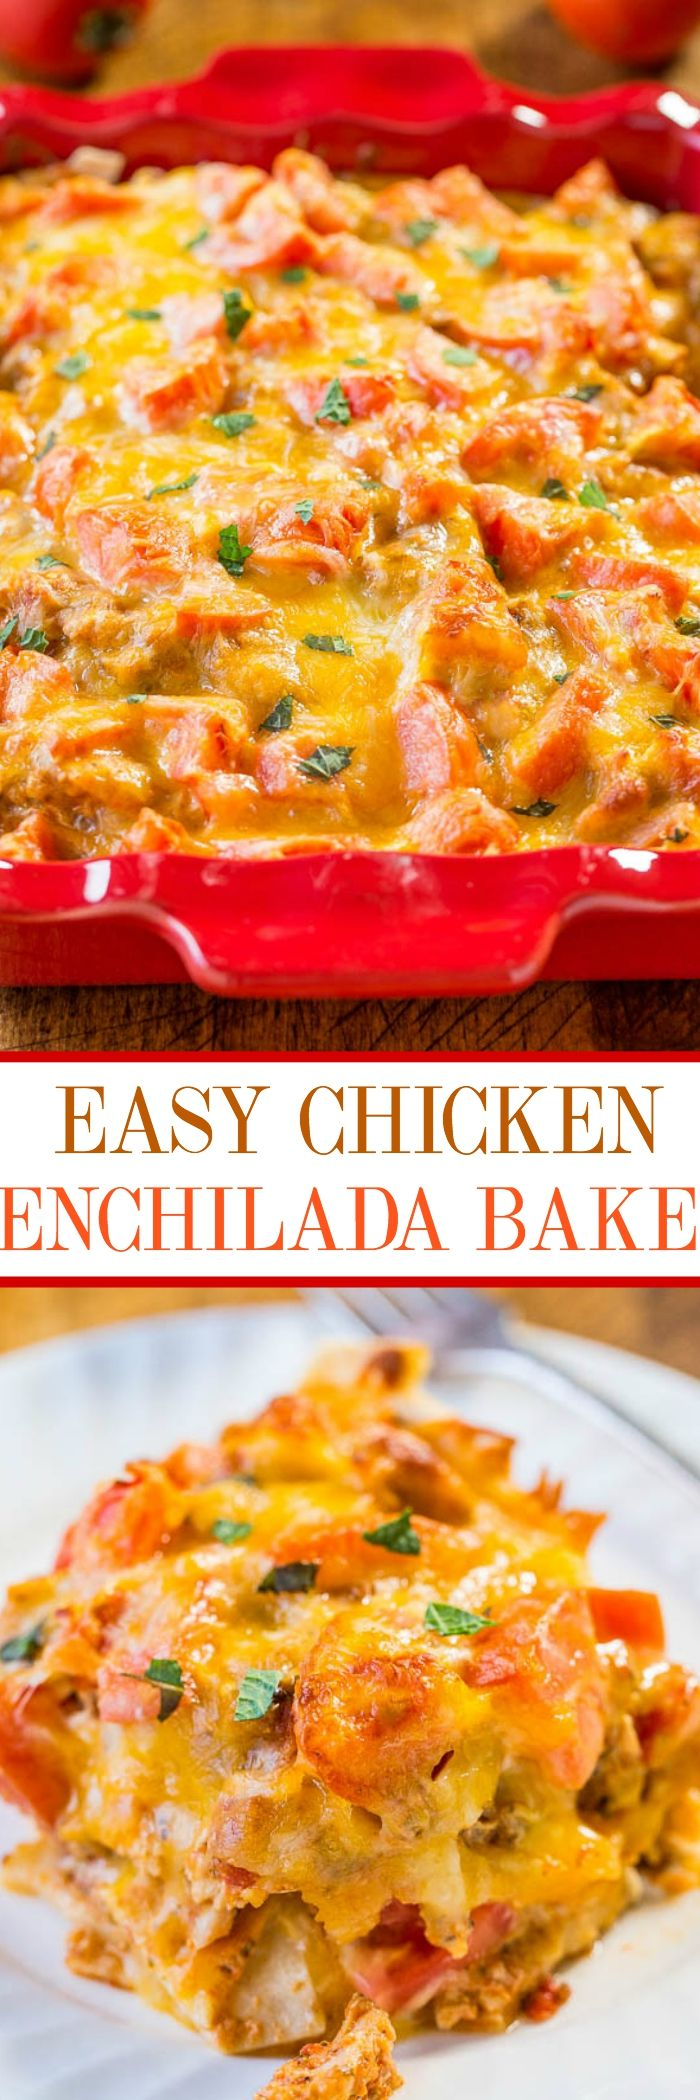 Easy Chicken Enchilada Bake